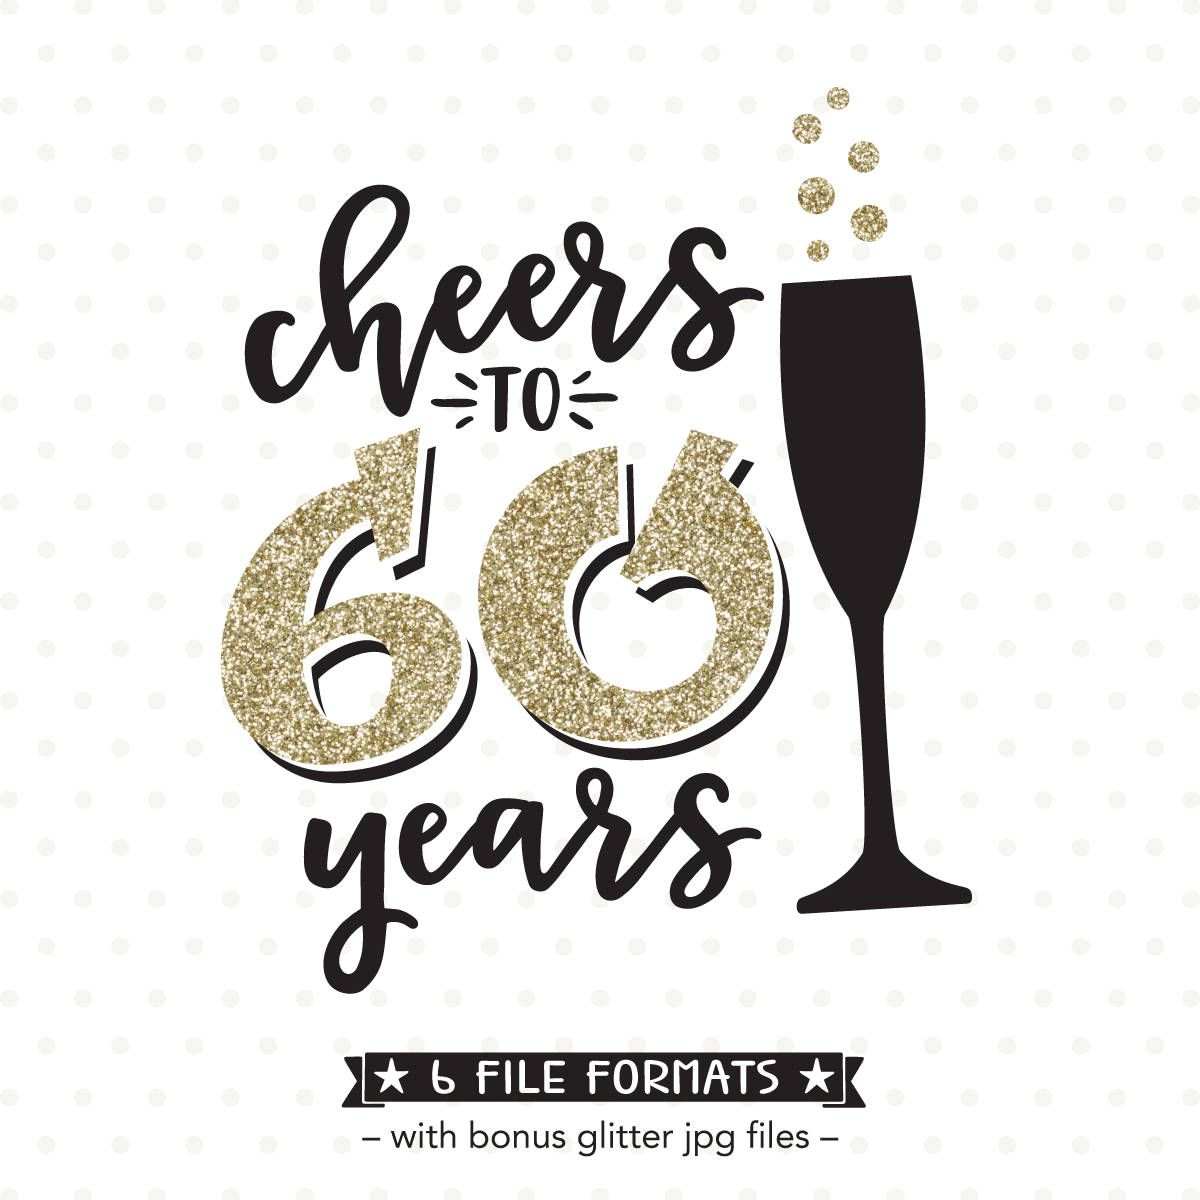 60th Birthday Svg Cheers To 60 Years Svg File 60th Anniversary